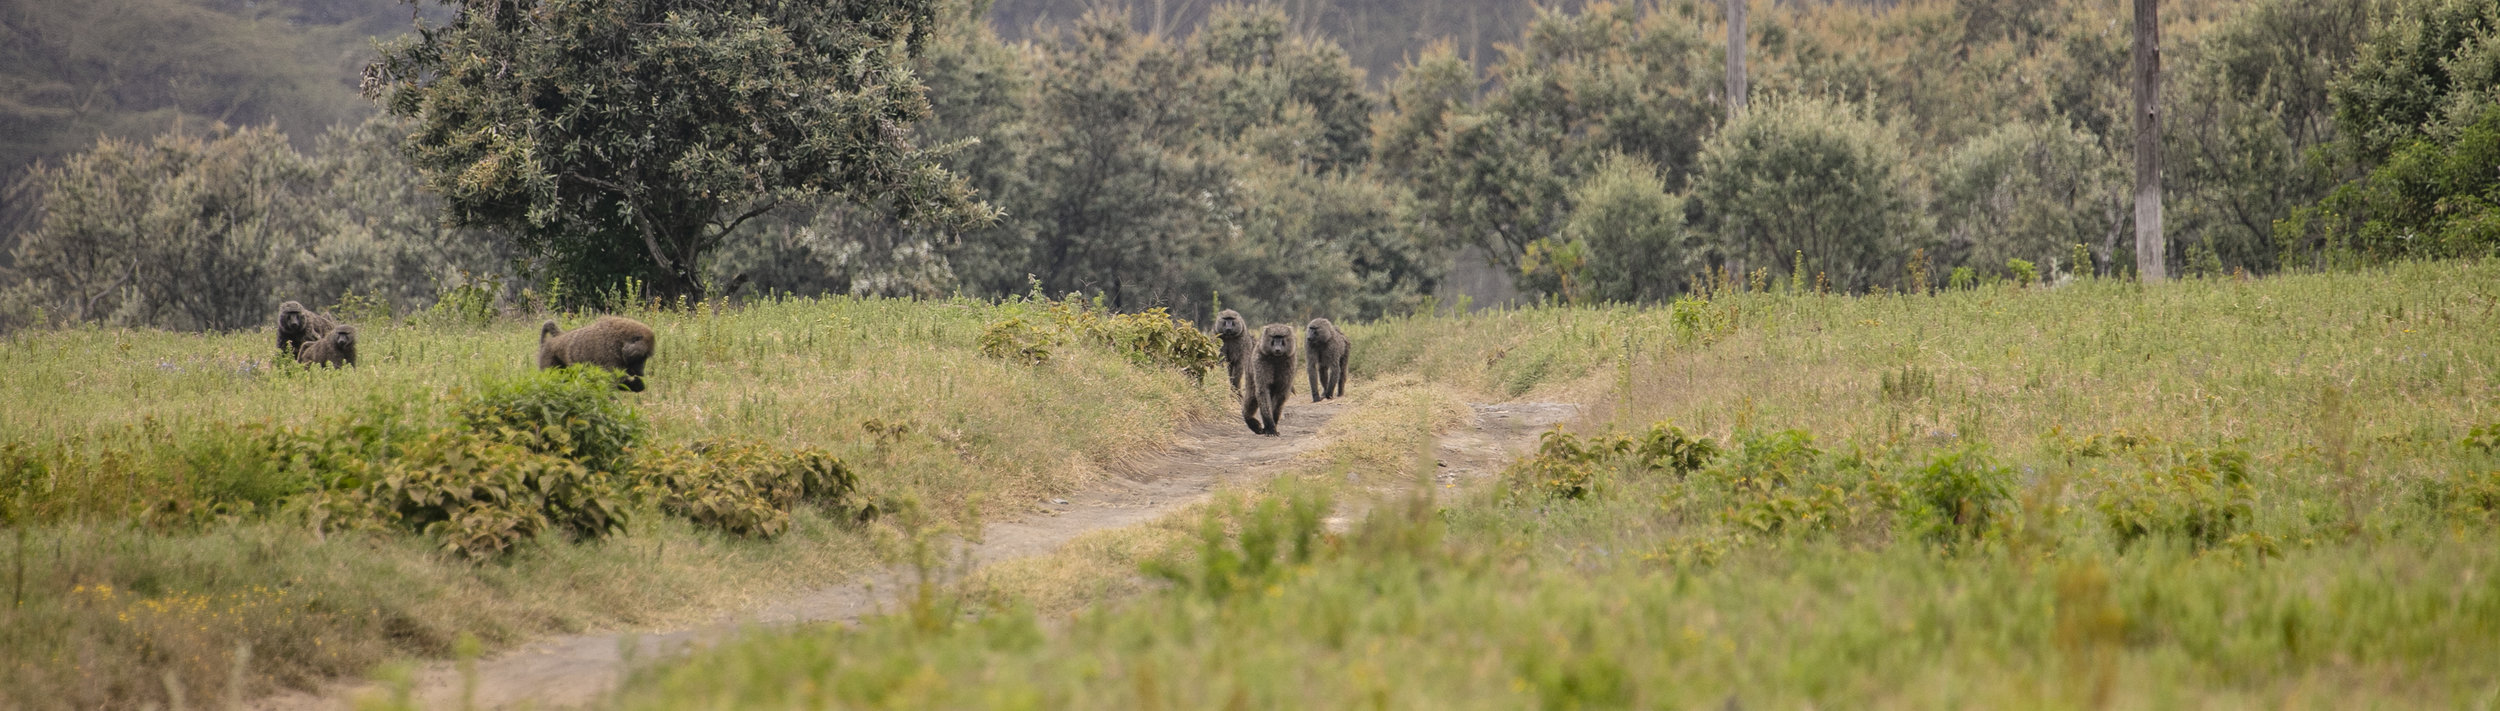 African Adventure - 21 July '18 - Lake Naivasha to Crater Lake Game Sanctuary - 017.JPG